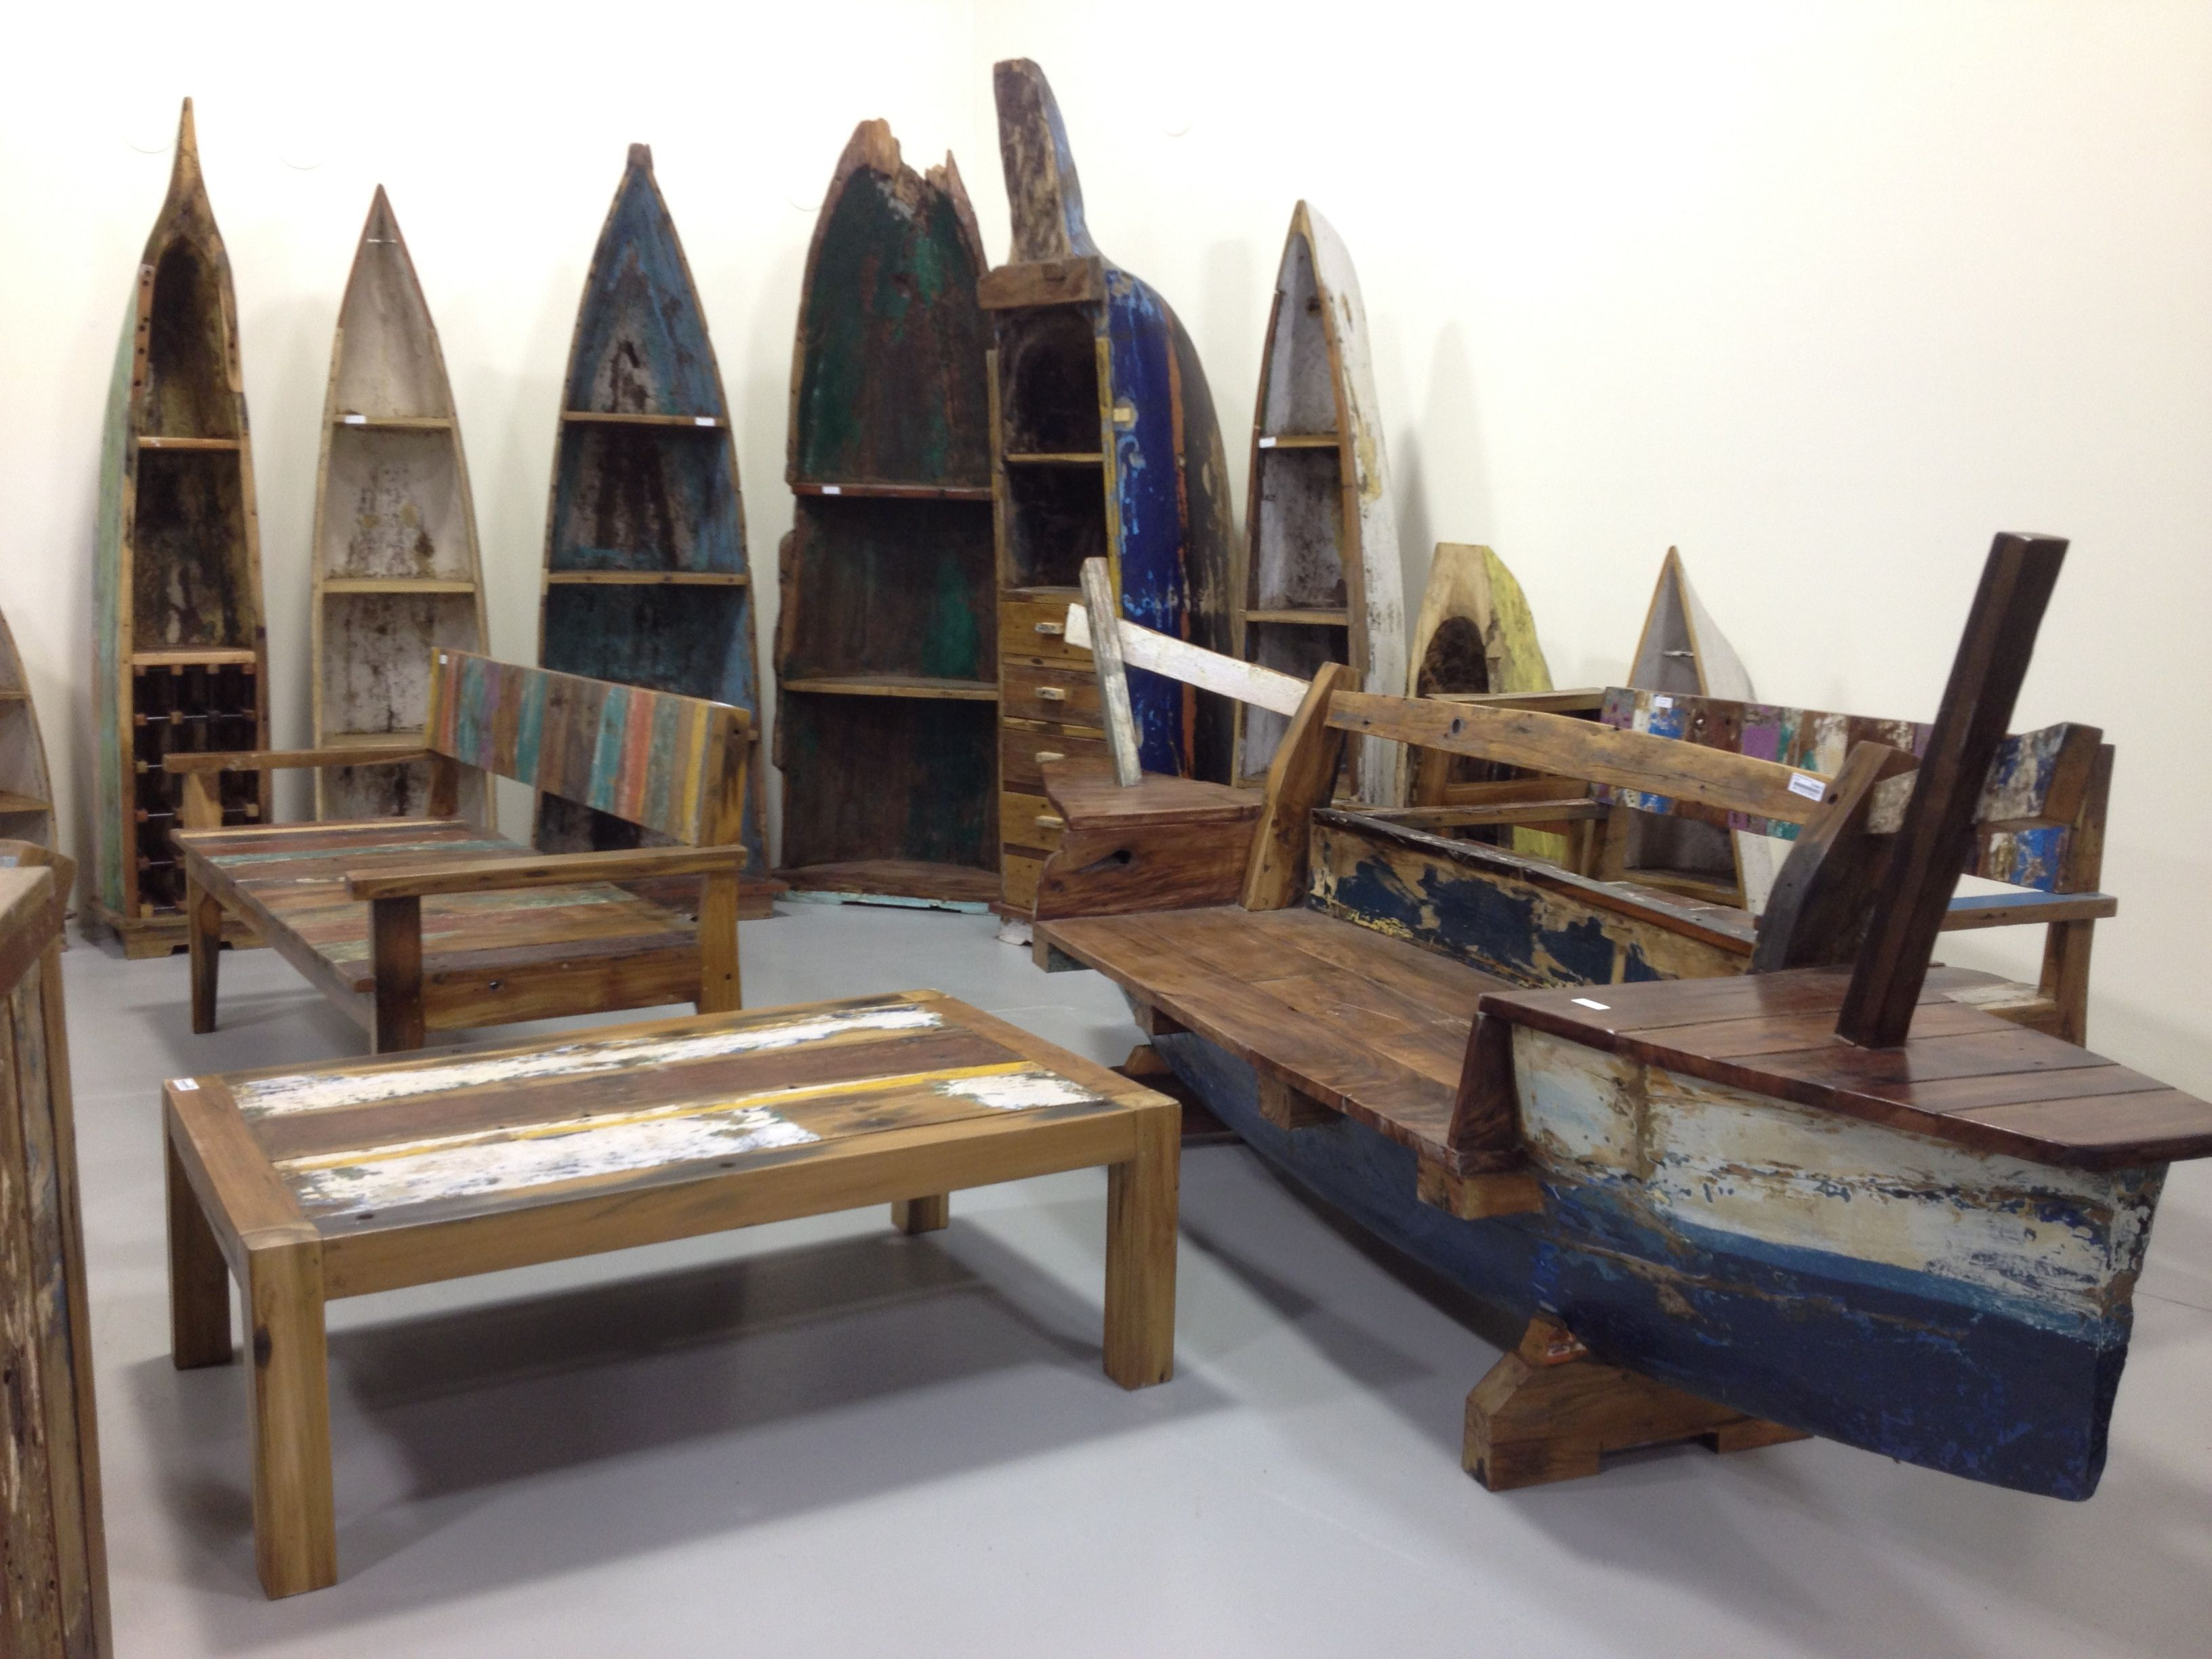 Boat Wood Furniture. Drovers Inside & Out. Perth, WA. Wanneroo ...